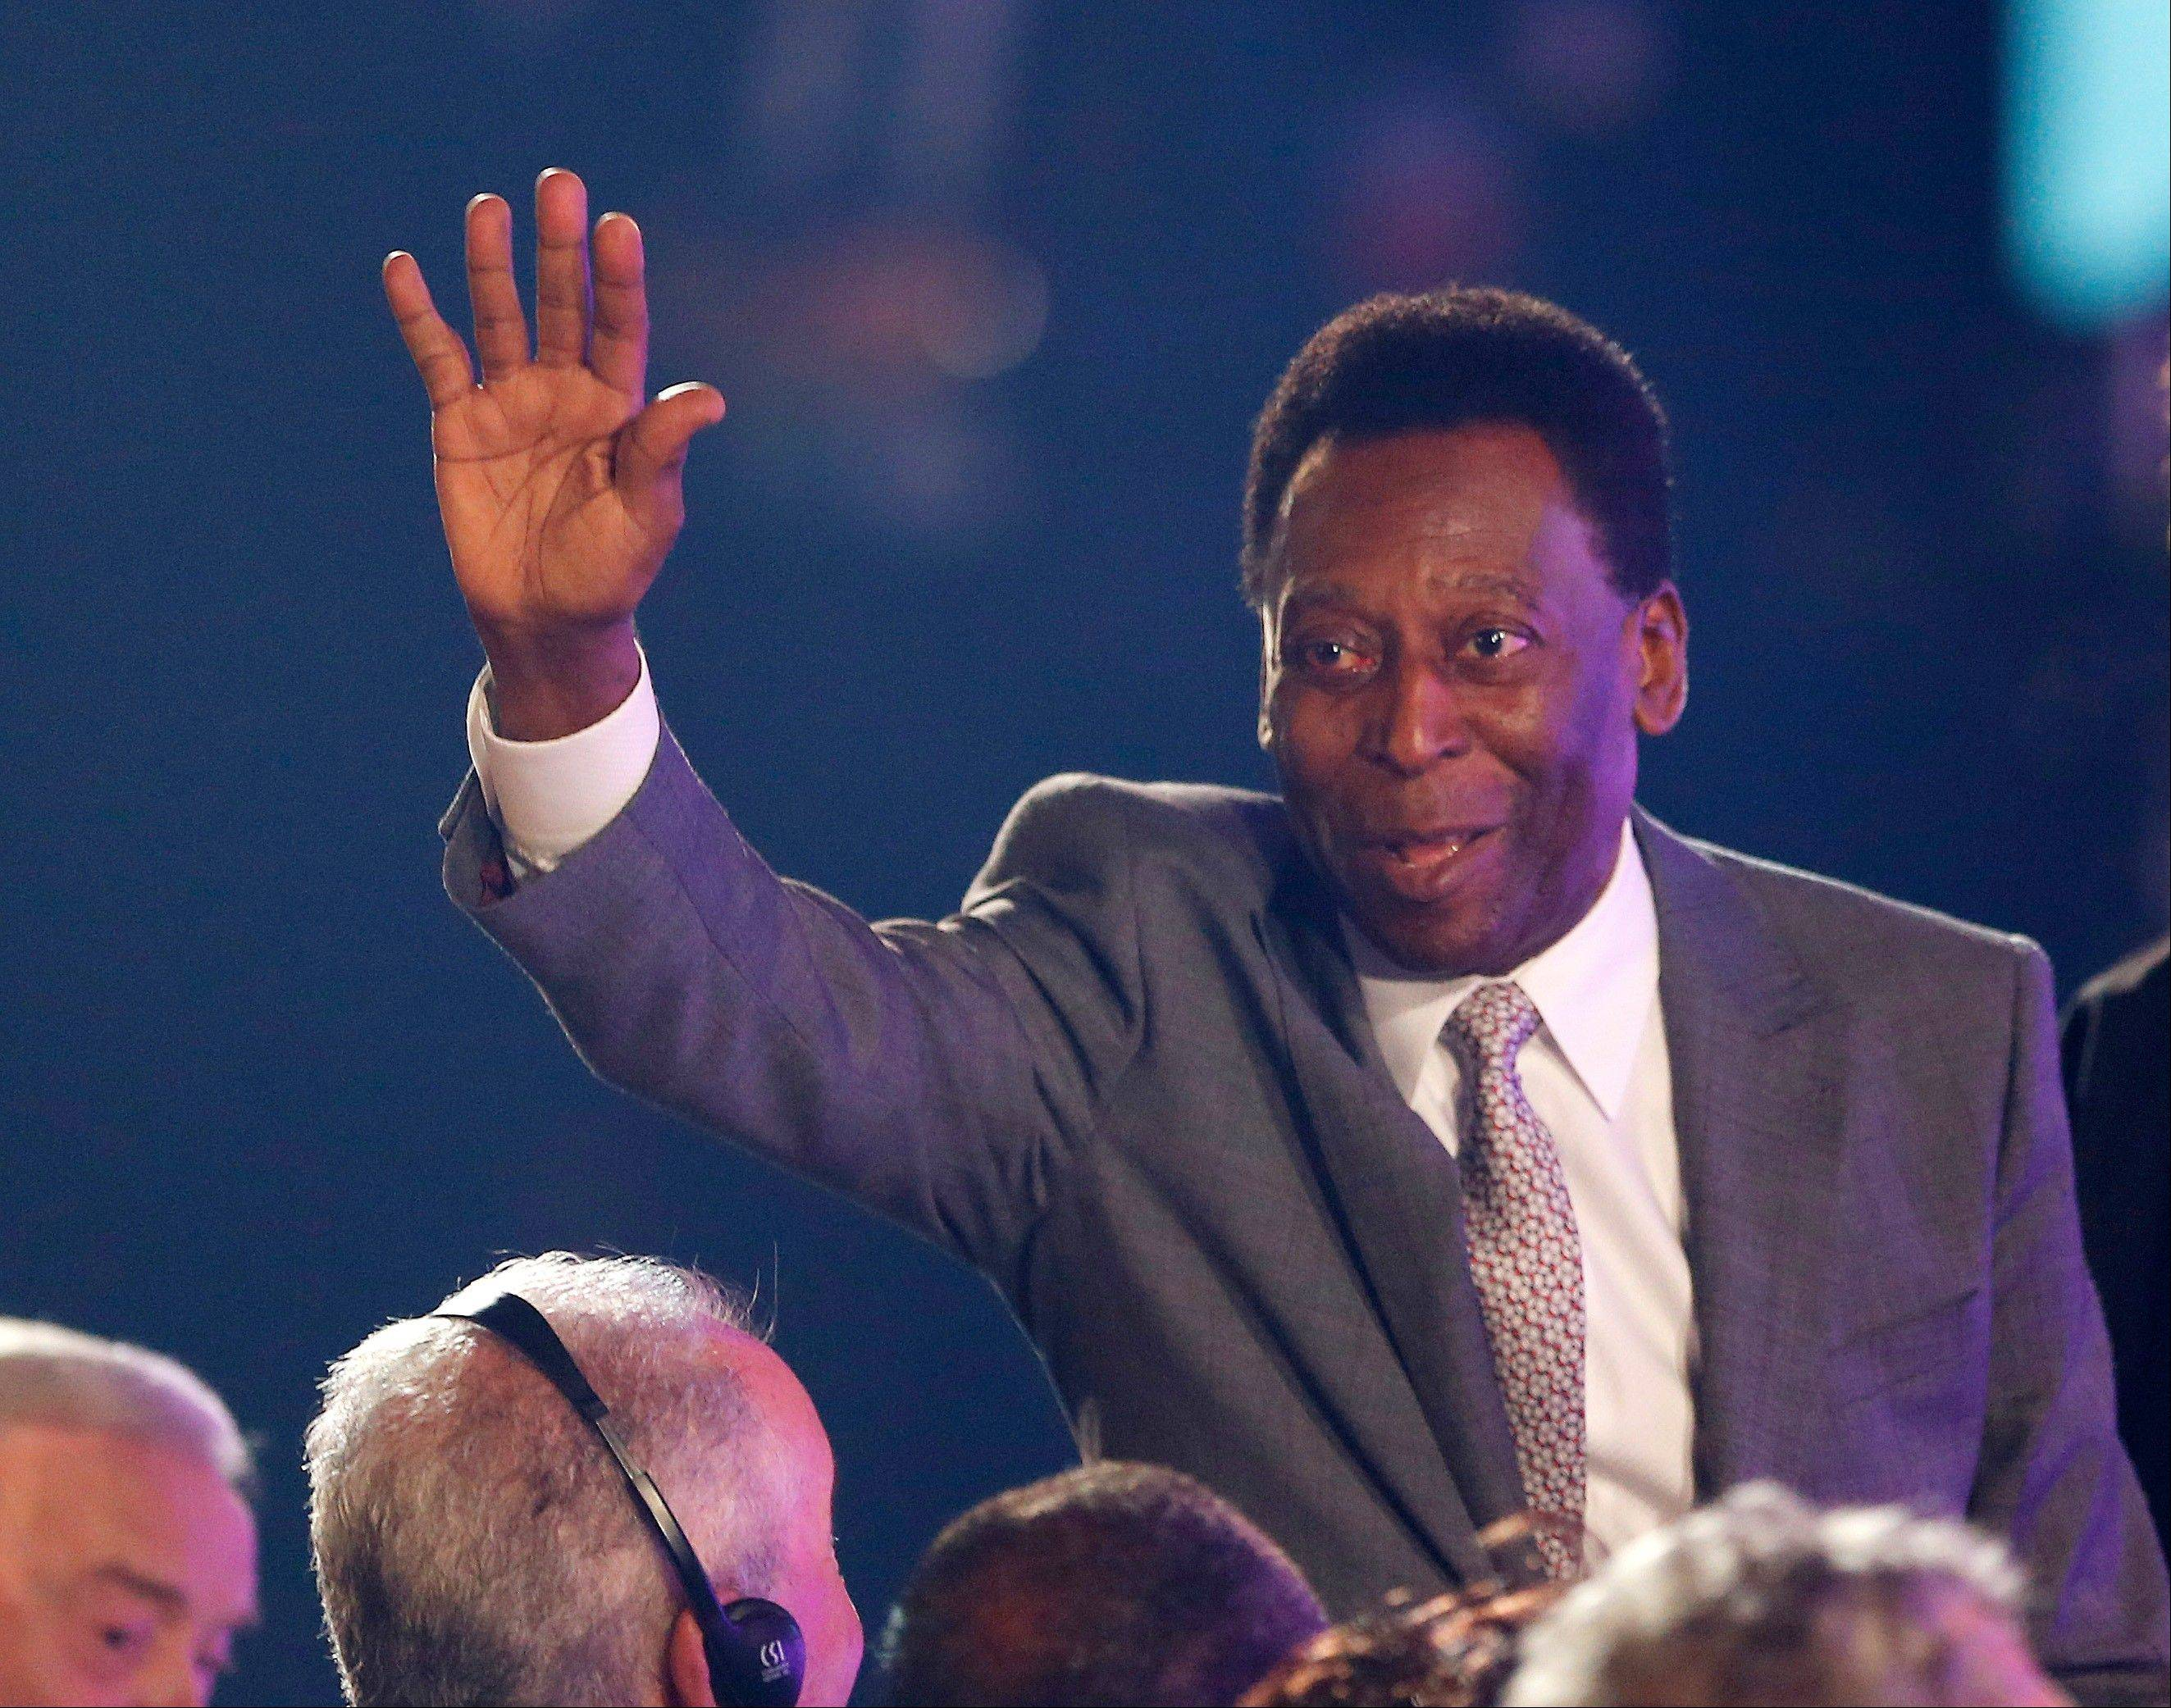 Brazilian soccer legend Pele, now 73 years old, took part in the draw ceremony for the 2014 World Cup.